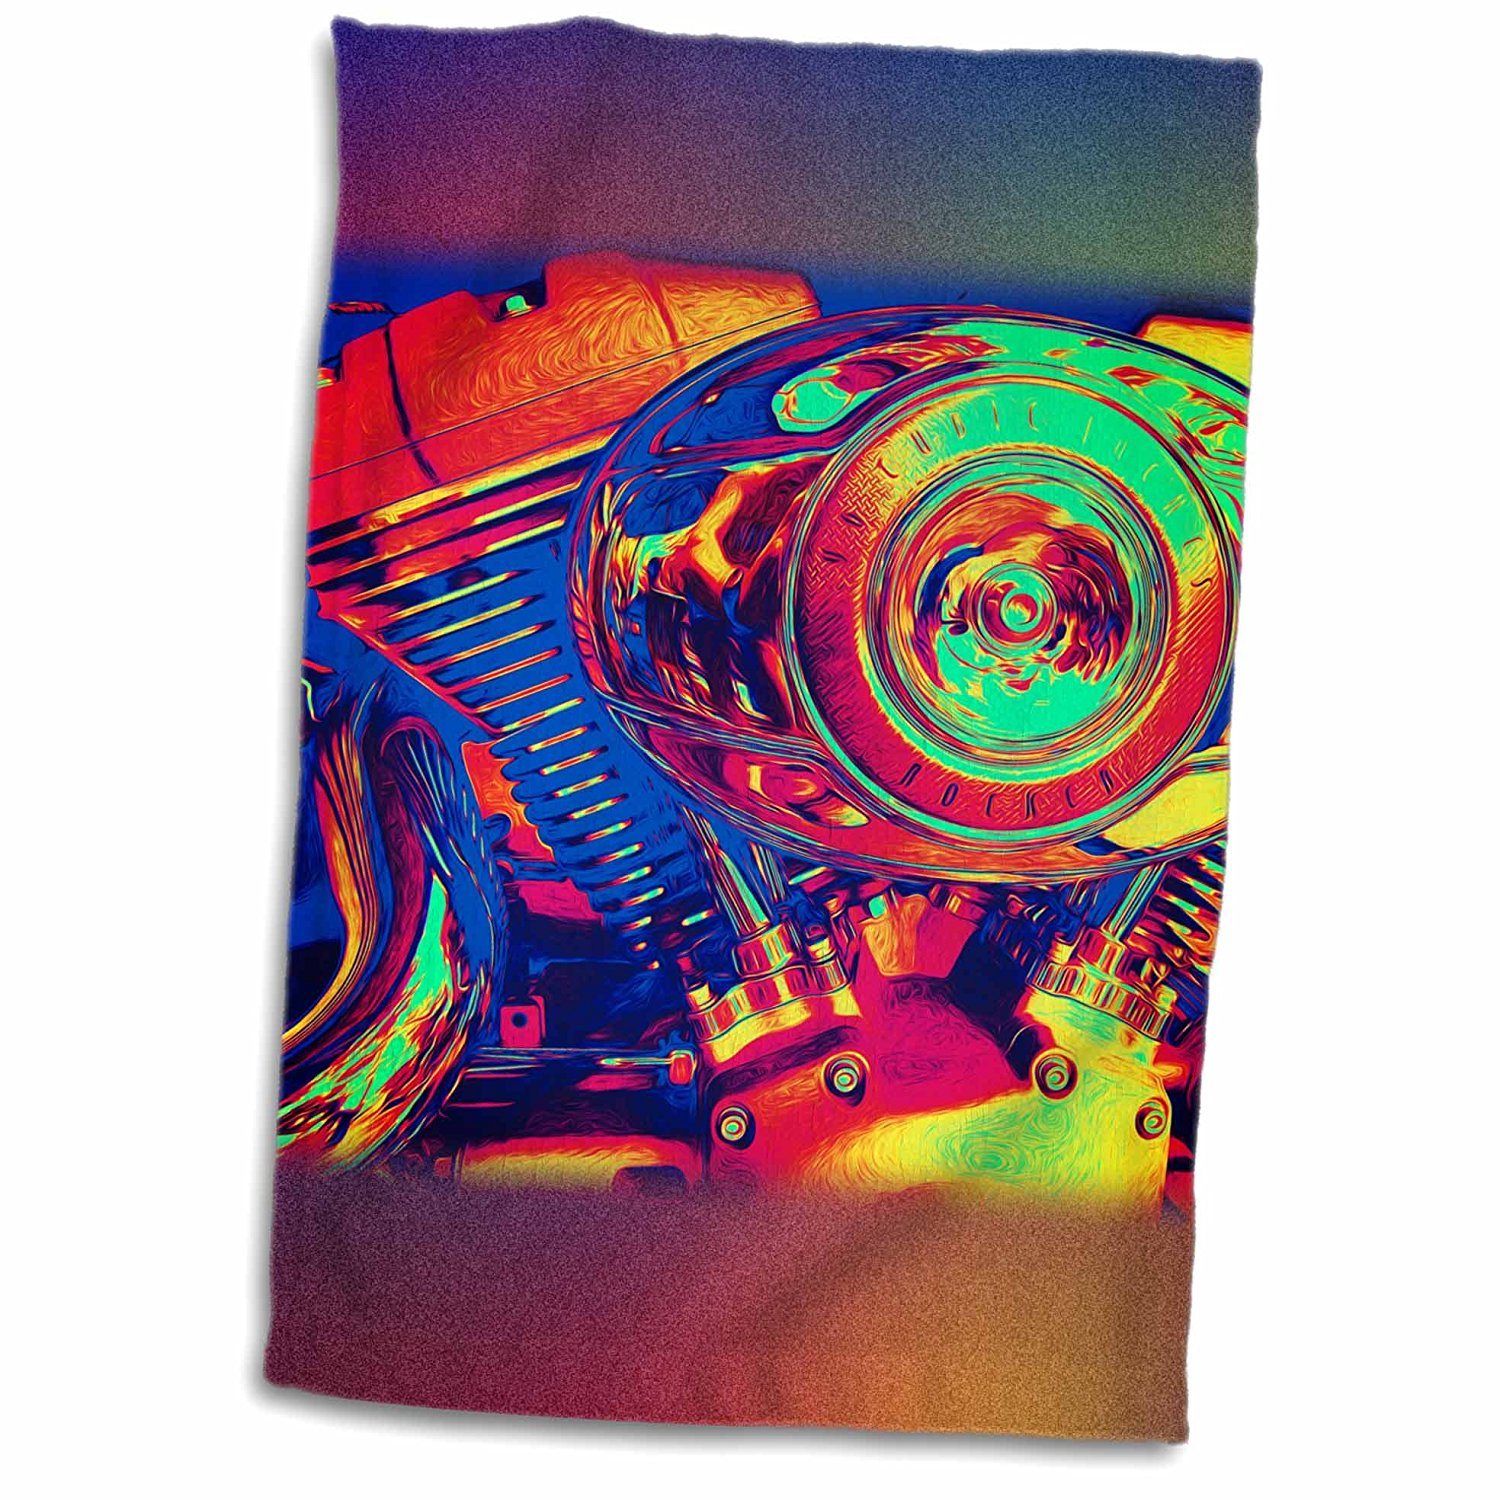 3dRose Phil Perkins - Graphic Design - Colorful Motorcycle Engine - artistic photo engine of a motorcycle - 12x18 Towel (twl_243428_1)